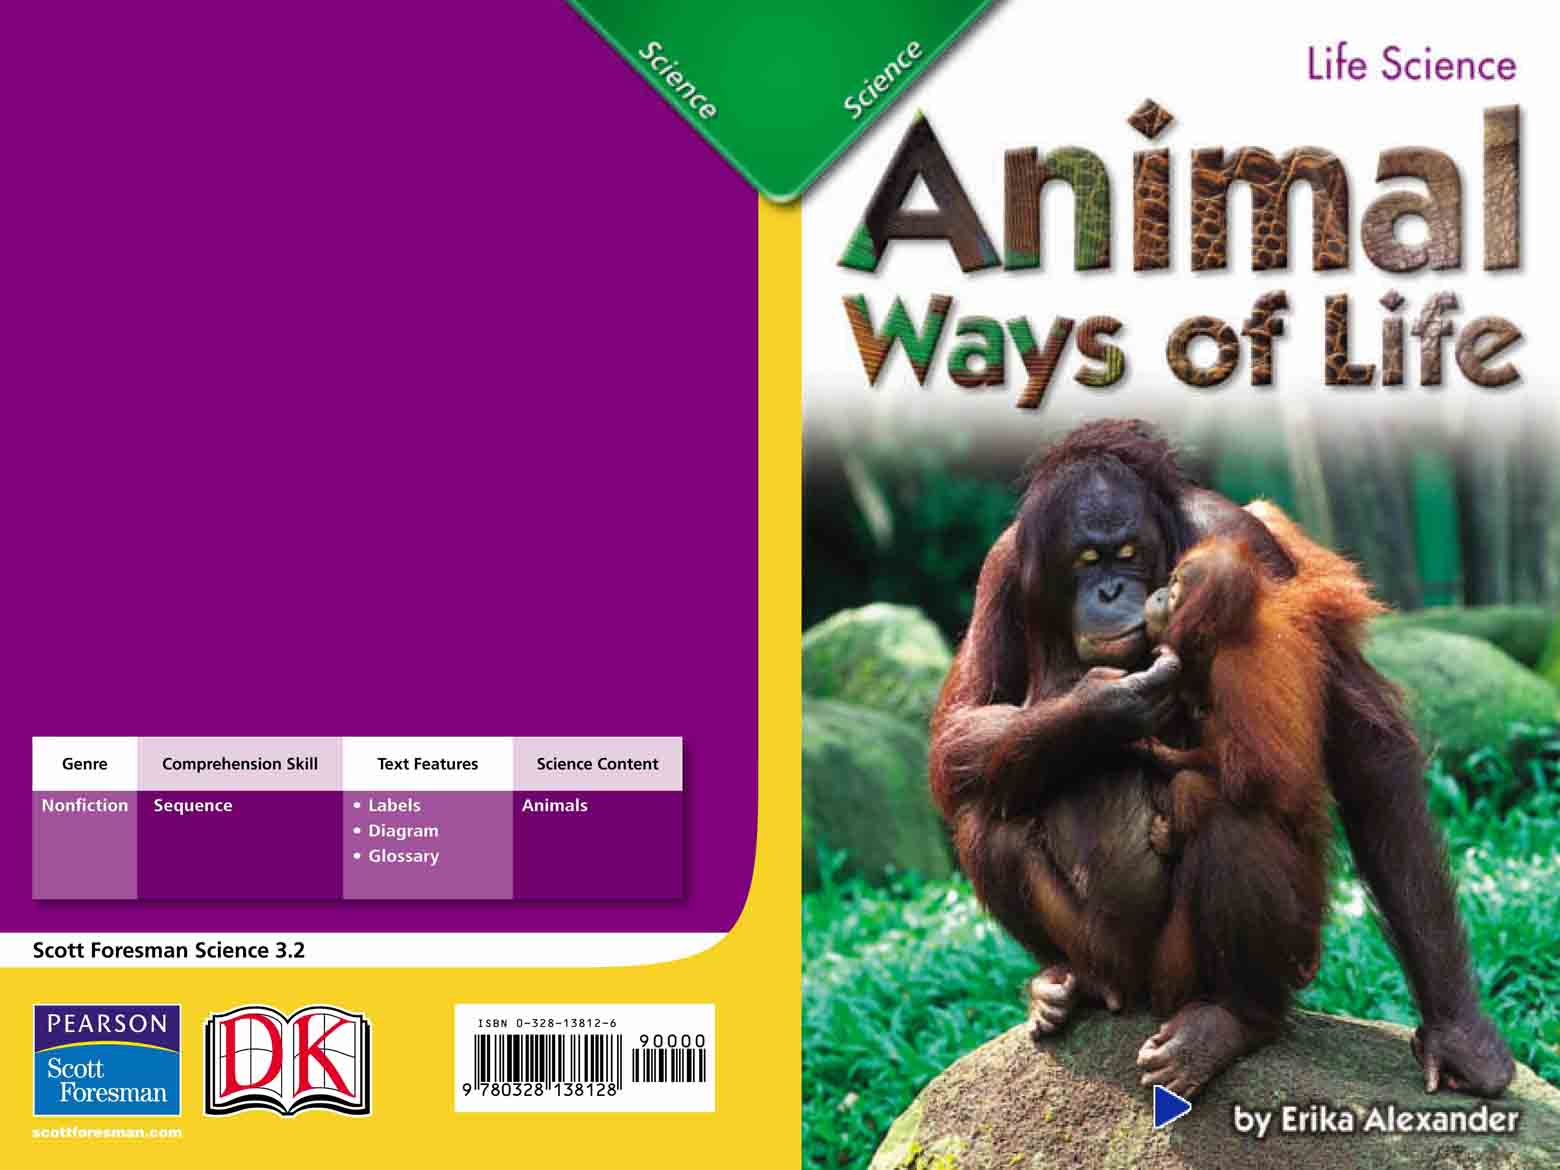 SCIENCE-ANIMAL WAYS OF LIFE